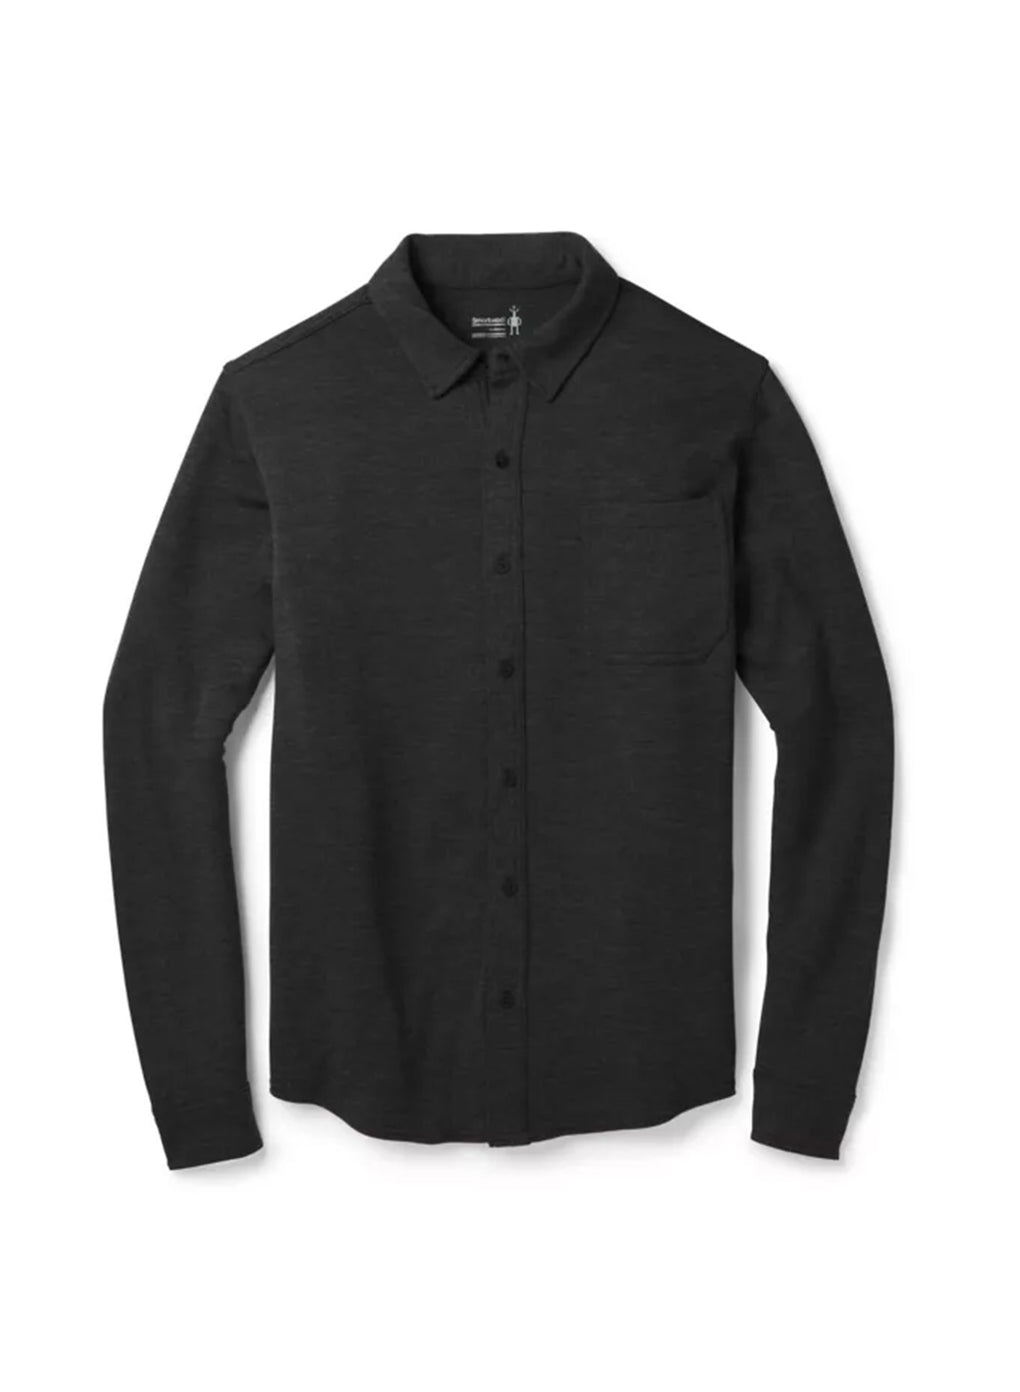 Smartwool Merino 250 Button Down Long Sleeve - Men's